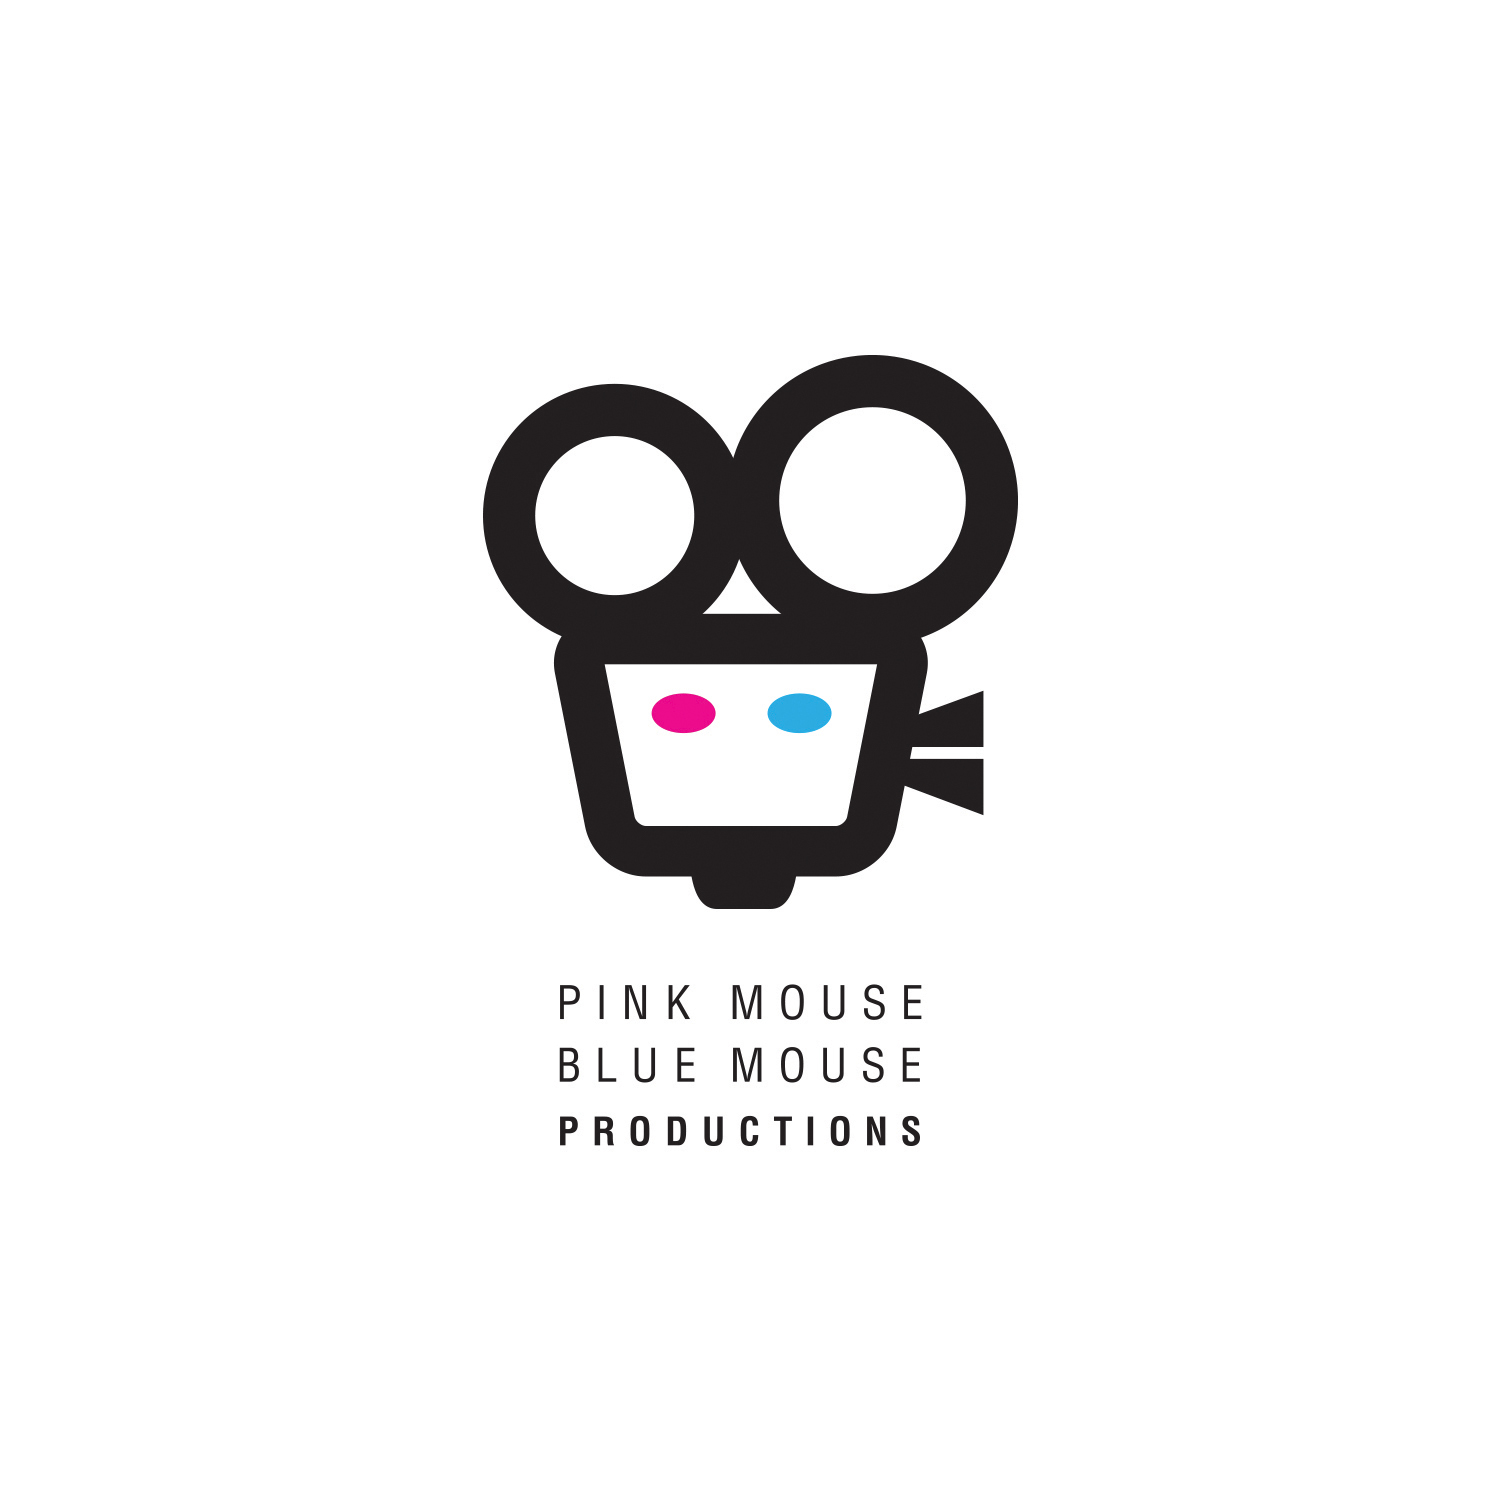 Pink Mouse Blue Mouse Productions_2 logo design by logo designer Harrell Creative